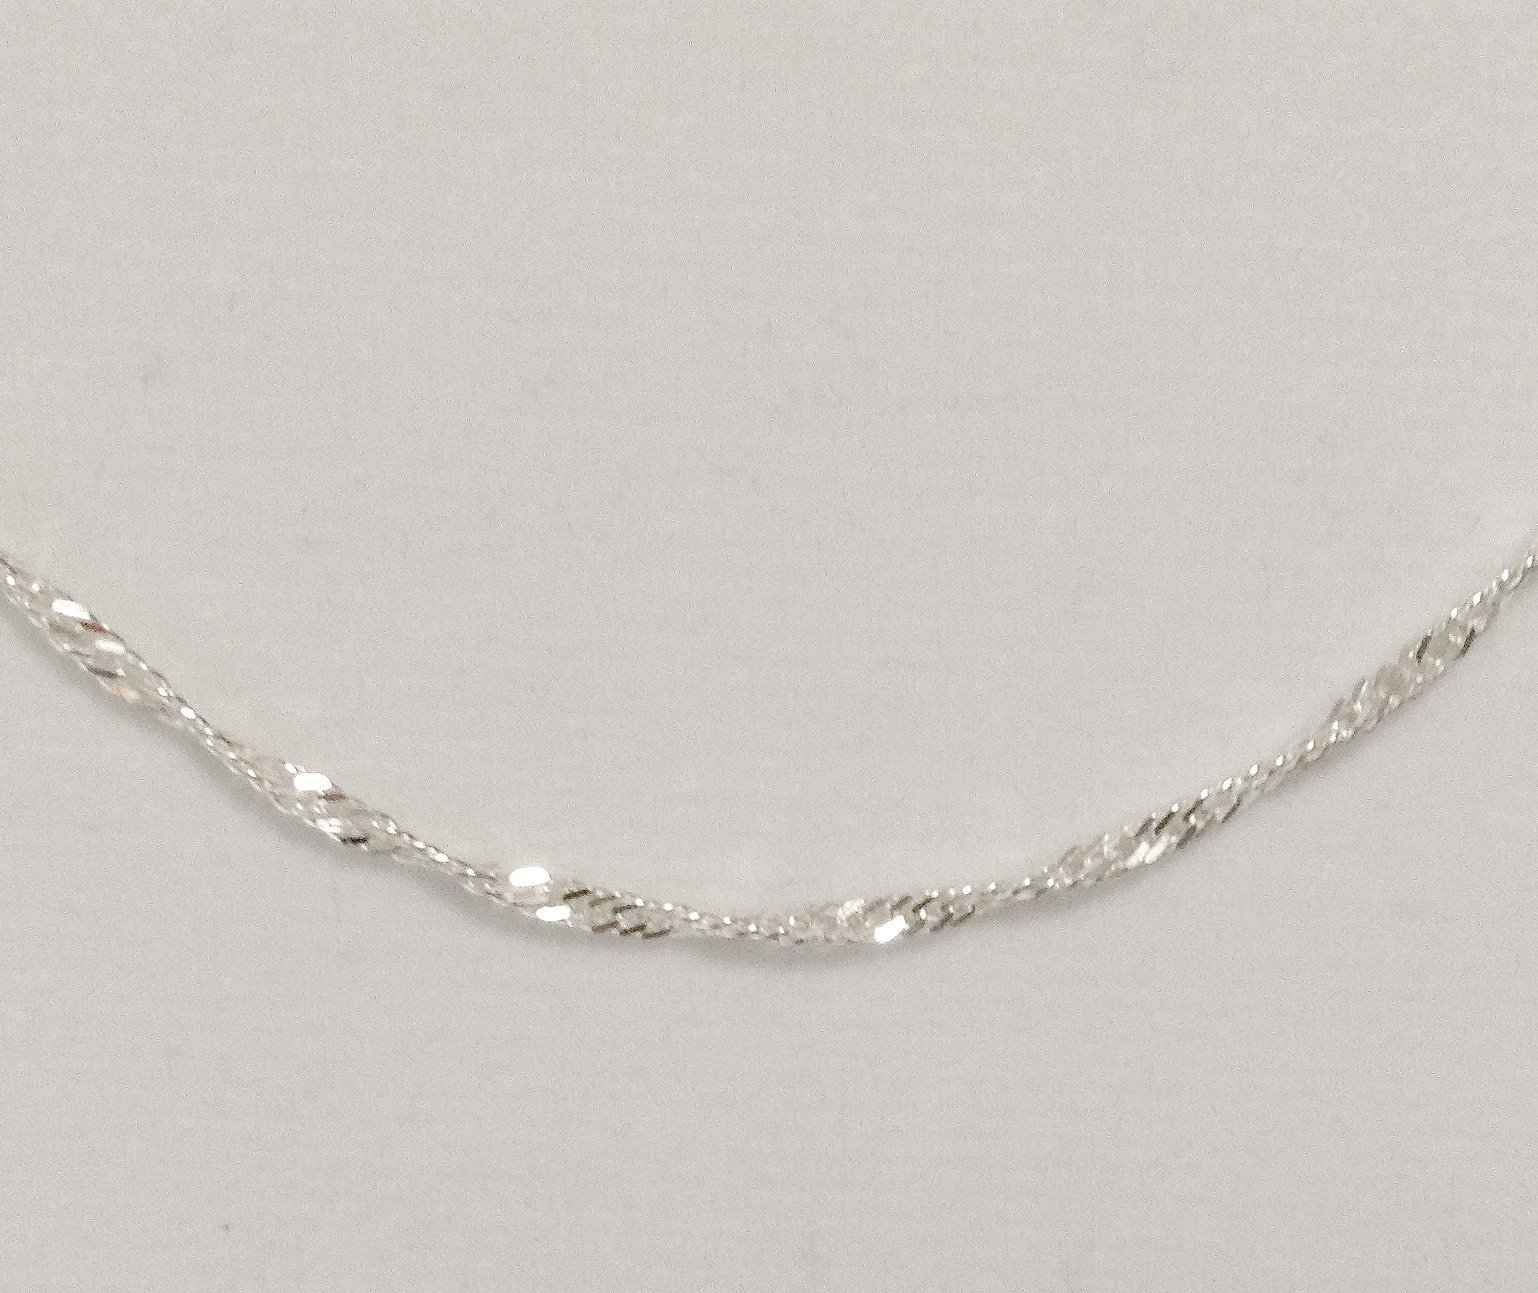 .925 Sterling Silver 28 Inch  Twisted Singapore Chain NEW